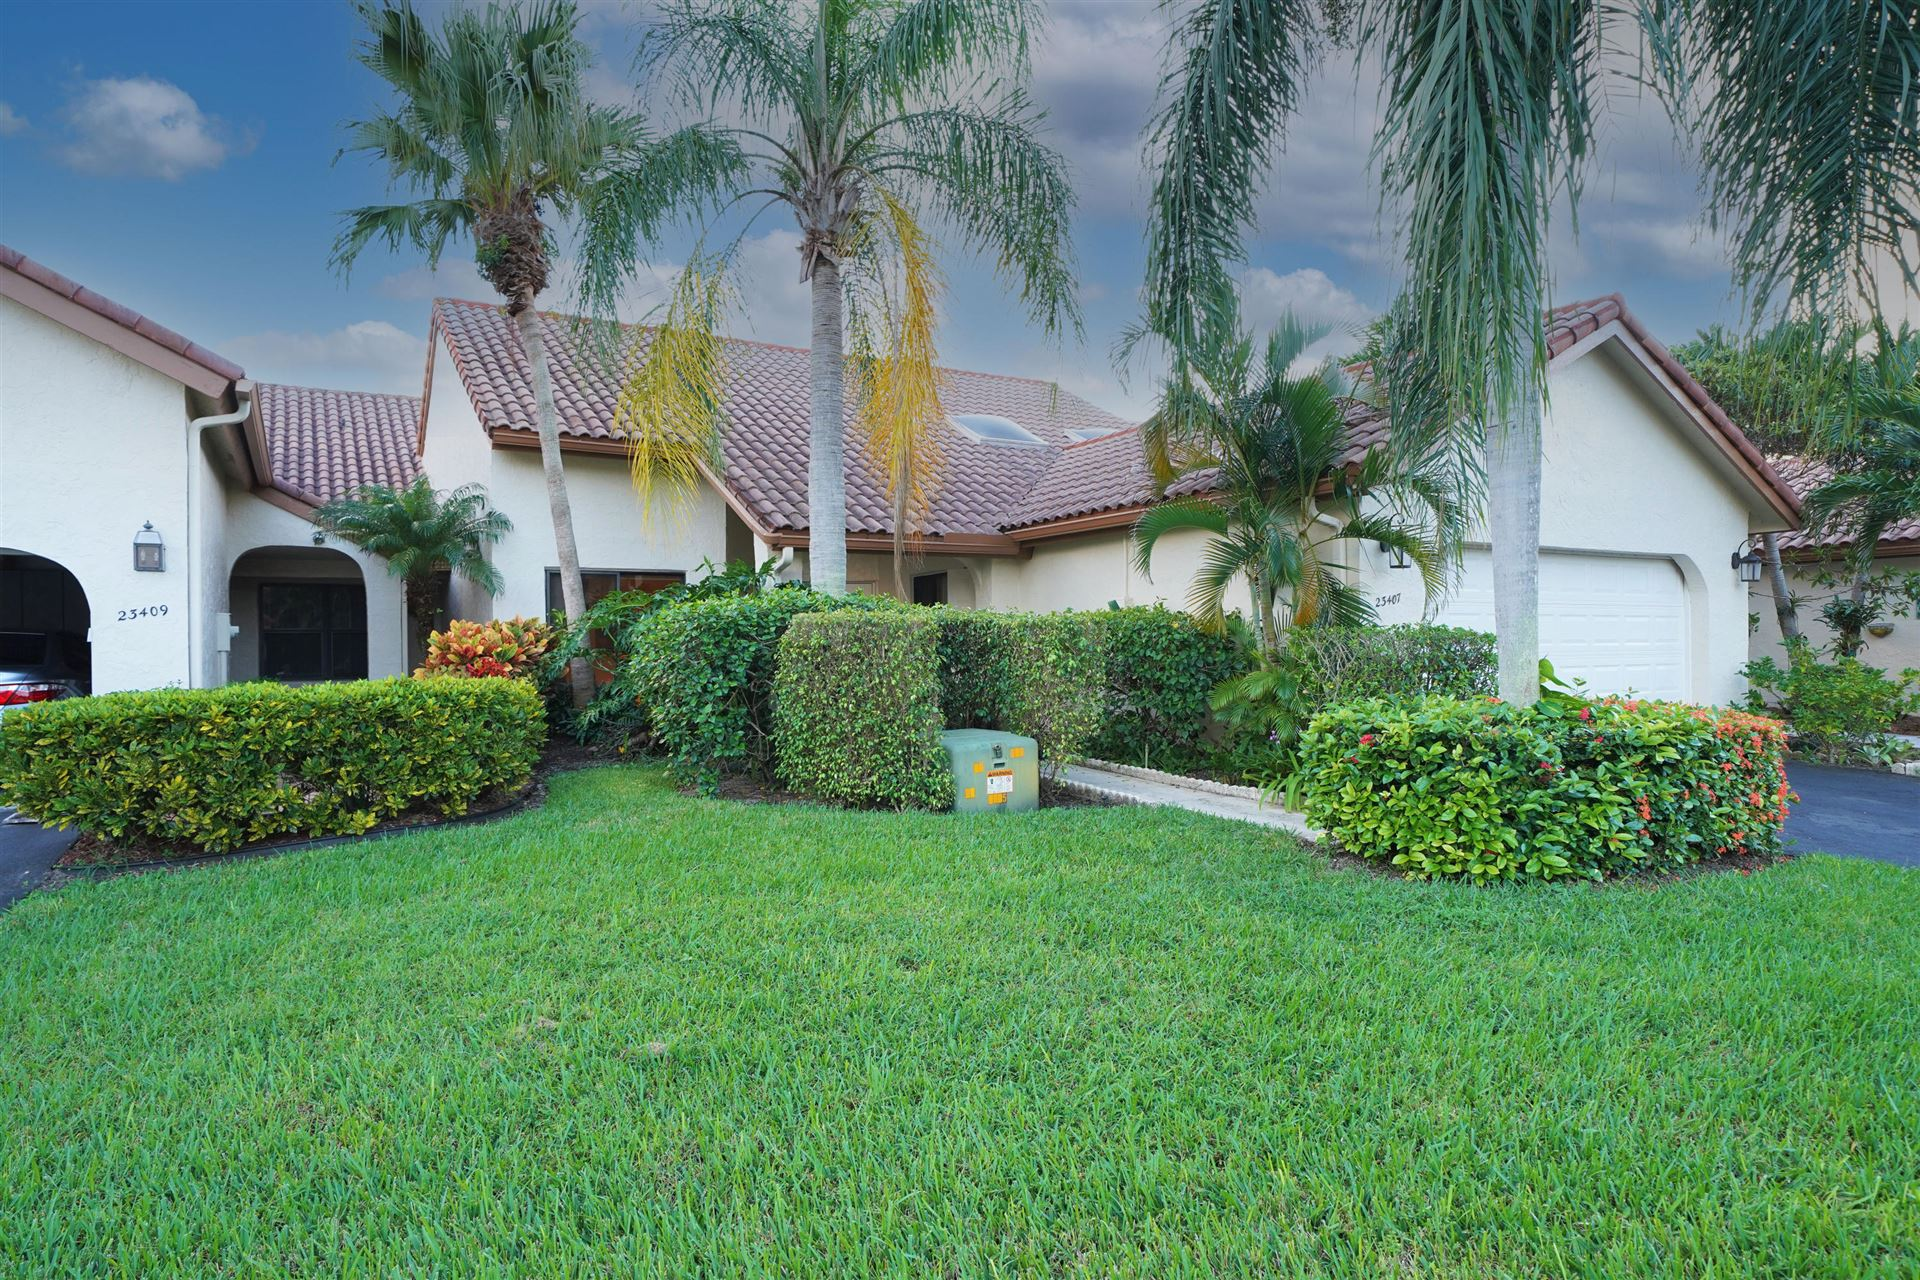 23407 Water Circle, Boca Raton, FL 33486 - #: RX-10662540